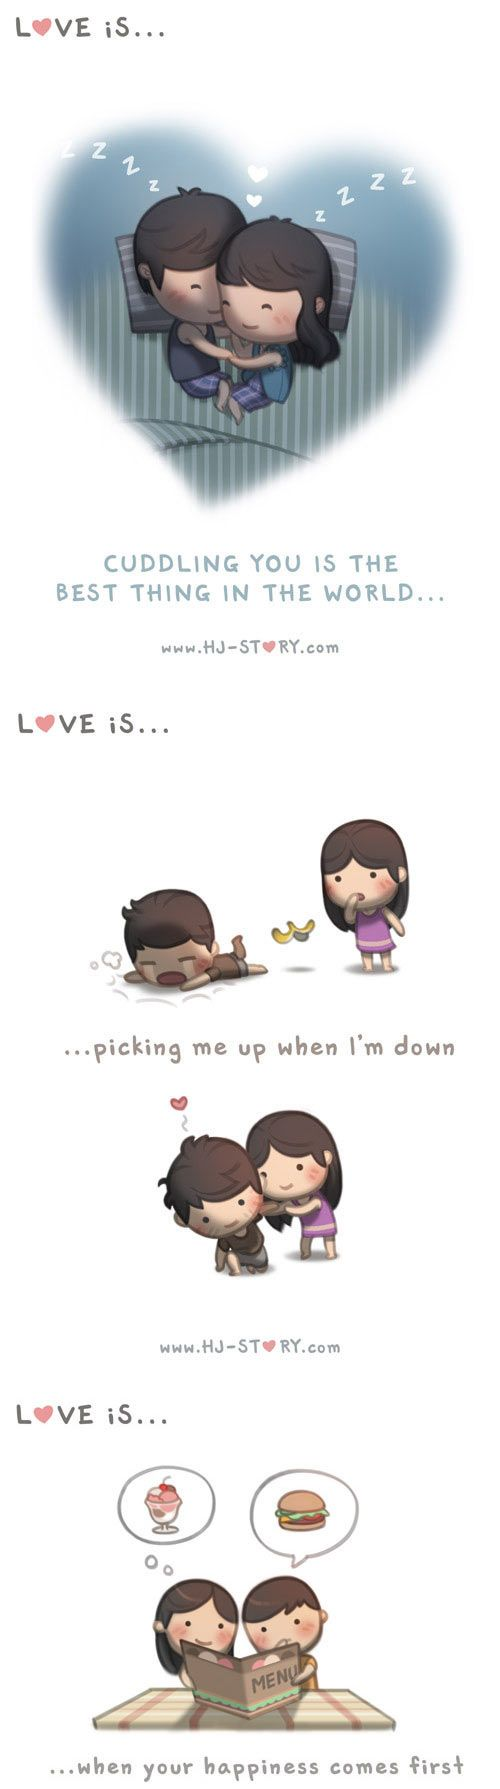 Cartoon Love Quotes 302 Best Love Images On Pinterest  Inspiration Quotes